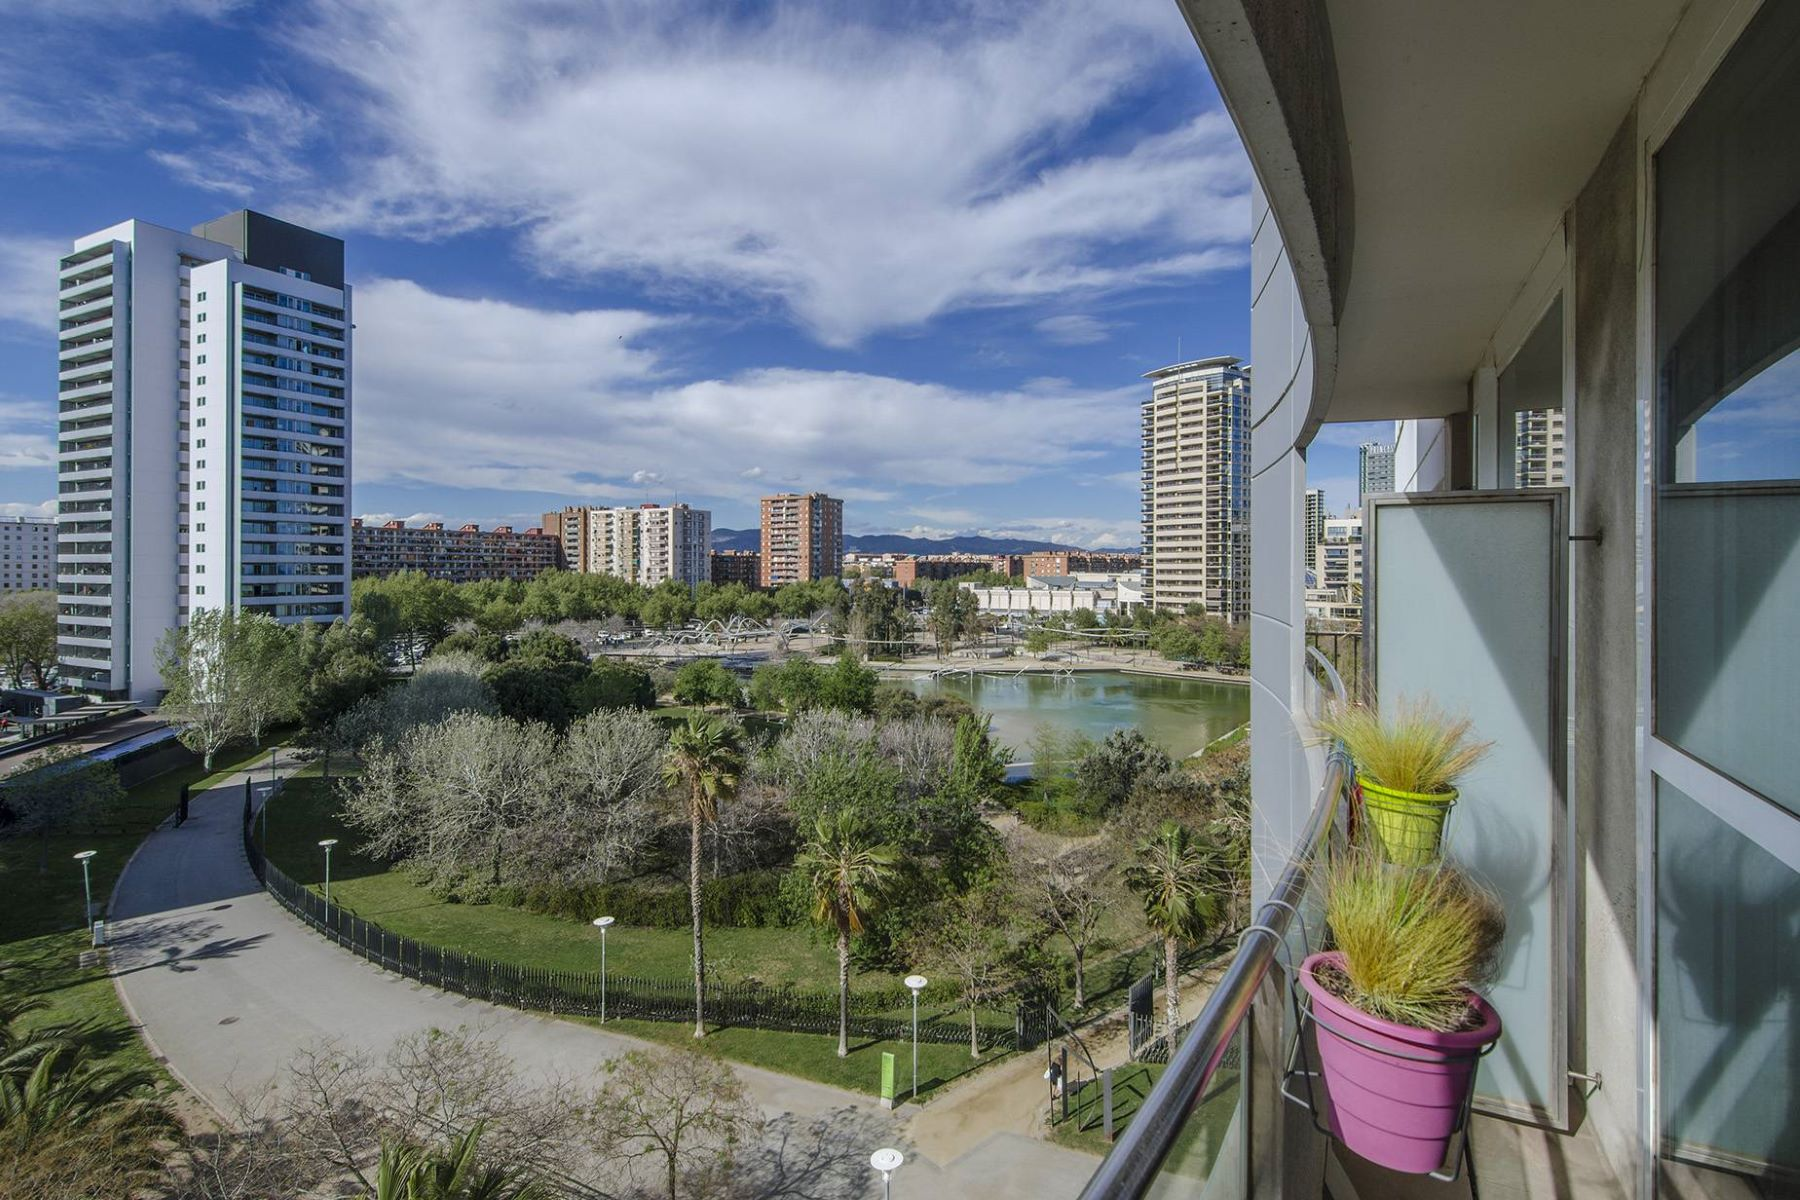 Apartment for Sale at Apartment in the Exclusive Residential Area of Diagonal Mar, Barcelona Barcelona City, Barcelona, 08019 Spain